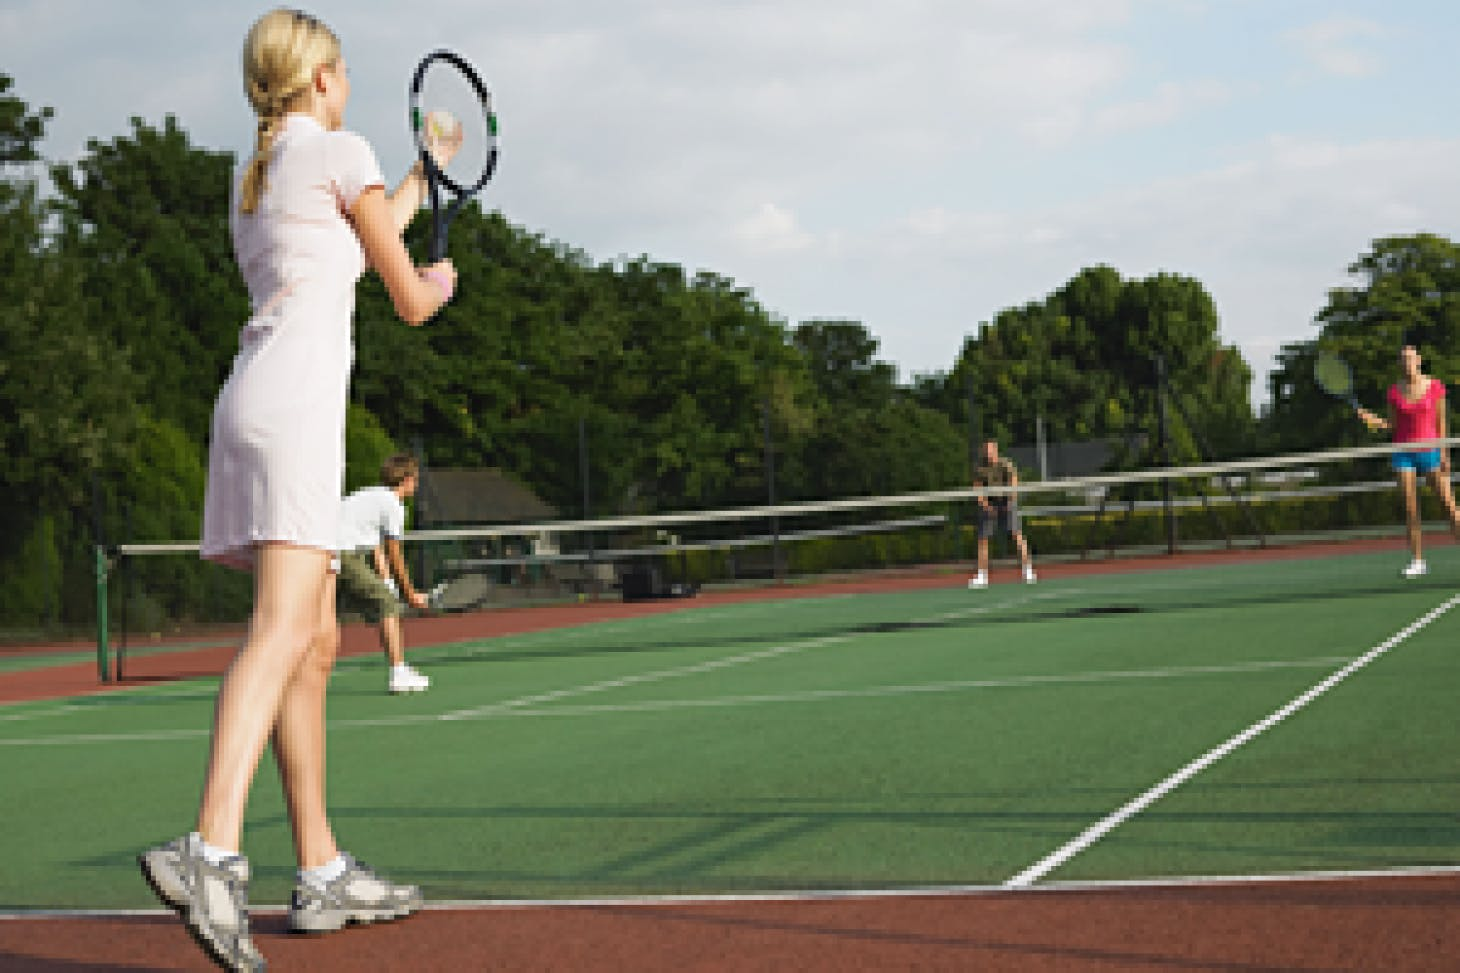 Wandsworth Common Tennis and Bowls Outdoor | Hard (macadam) tennis court